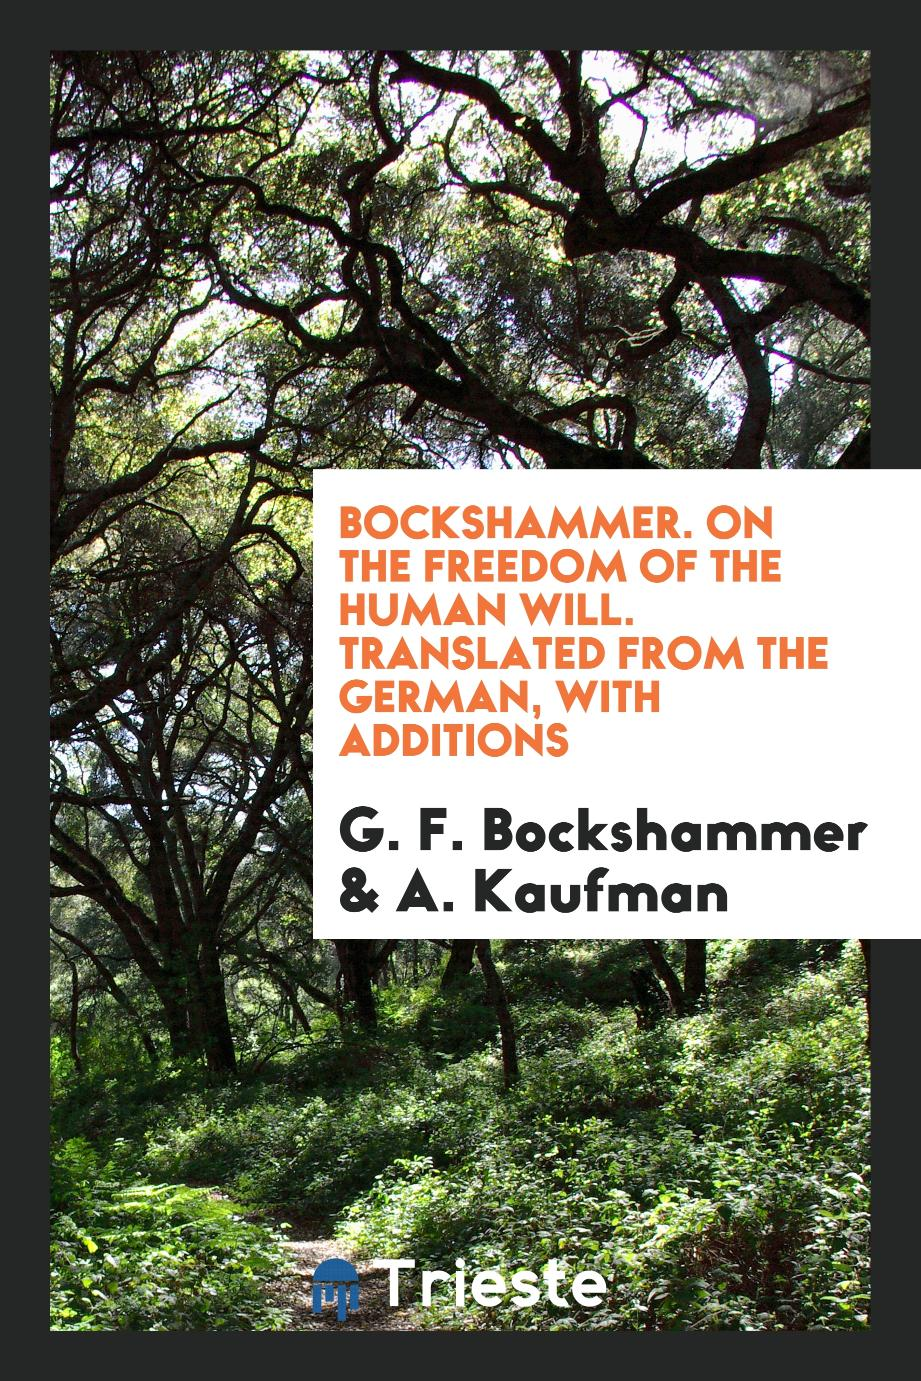 Bockshammer. On the Freedom of the Human Will. Translated from the German, with Additions